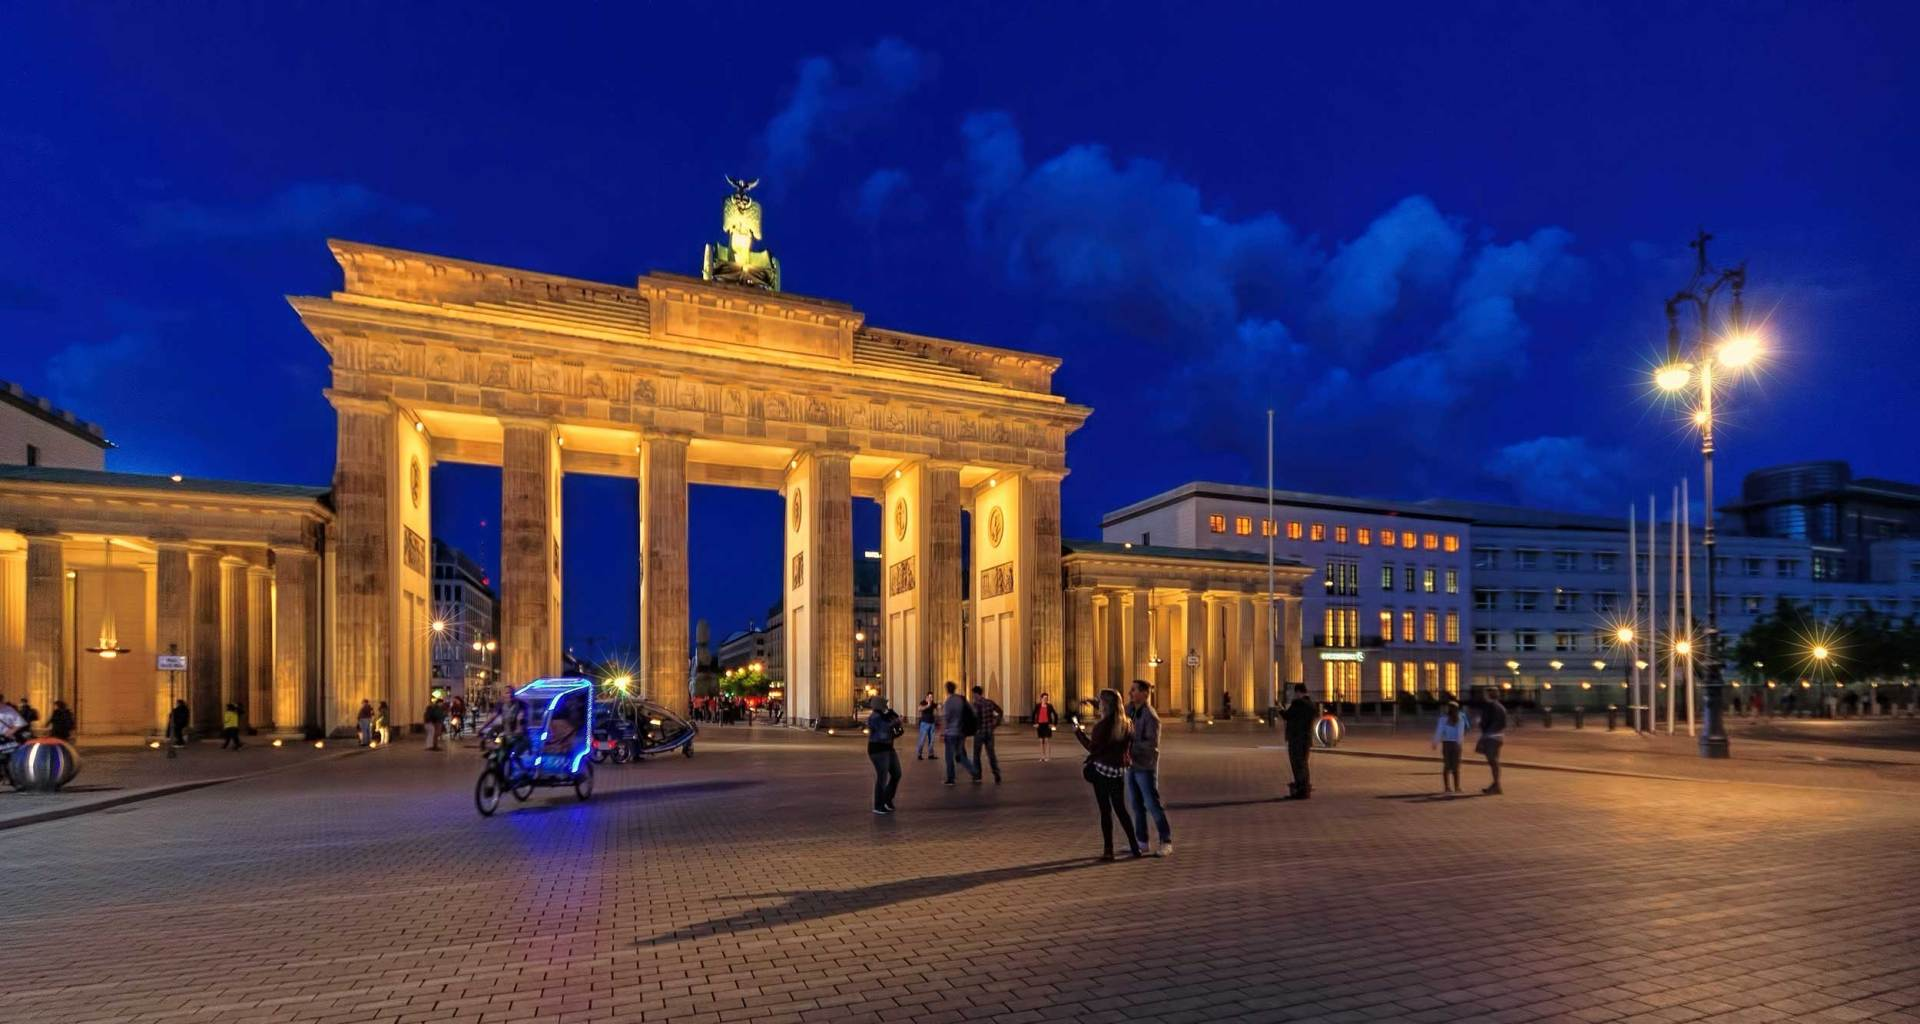 Brandenburg Gate against a dark blue sky at night.